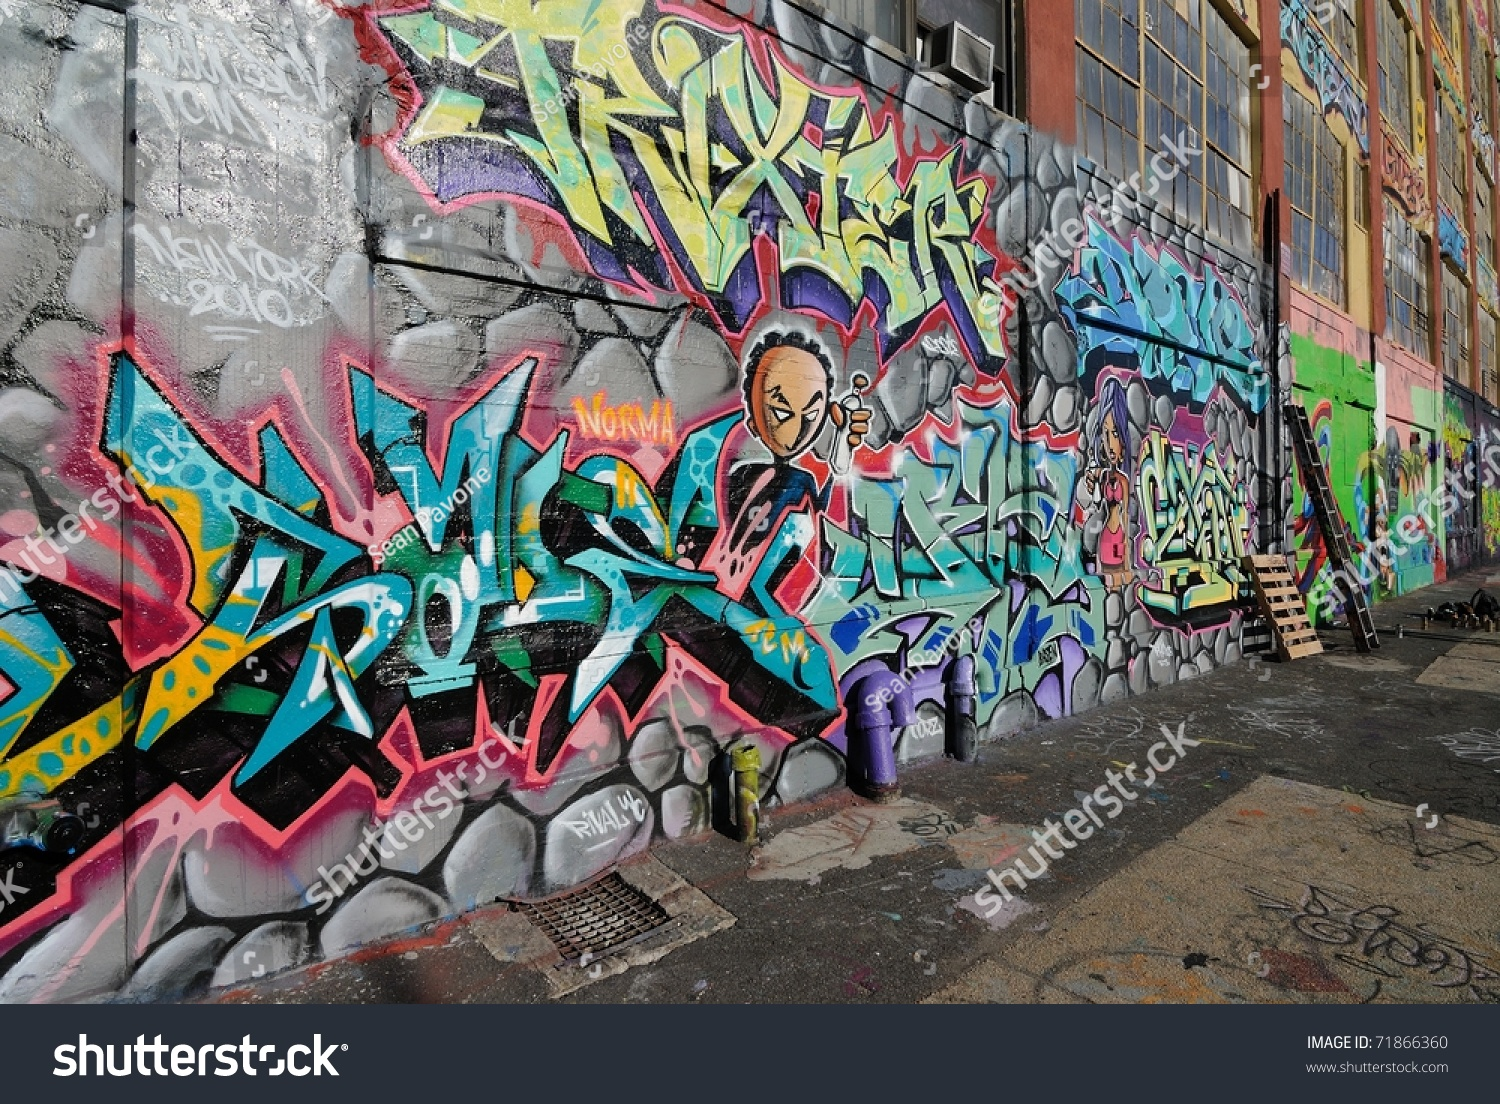 Graffiti wall in queens ny - Queens New York October 7 Five Pointz Considered A Graffiti Mecca